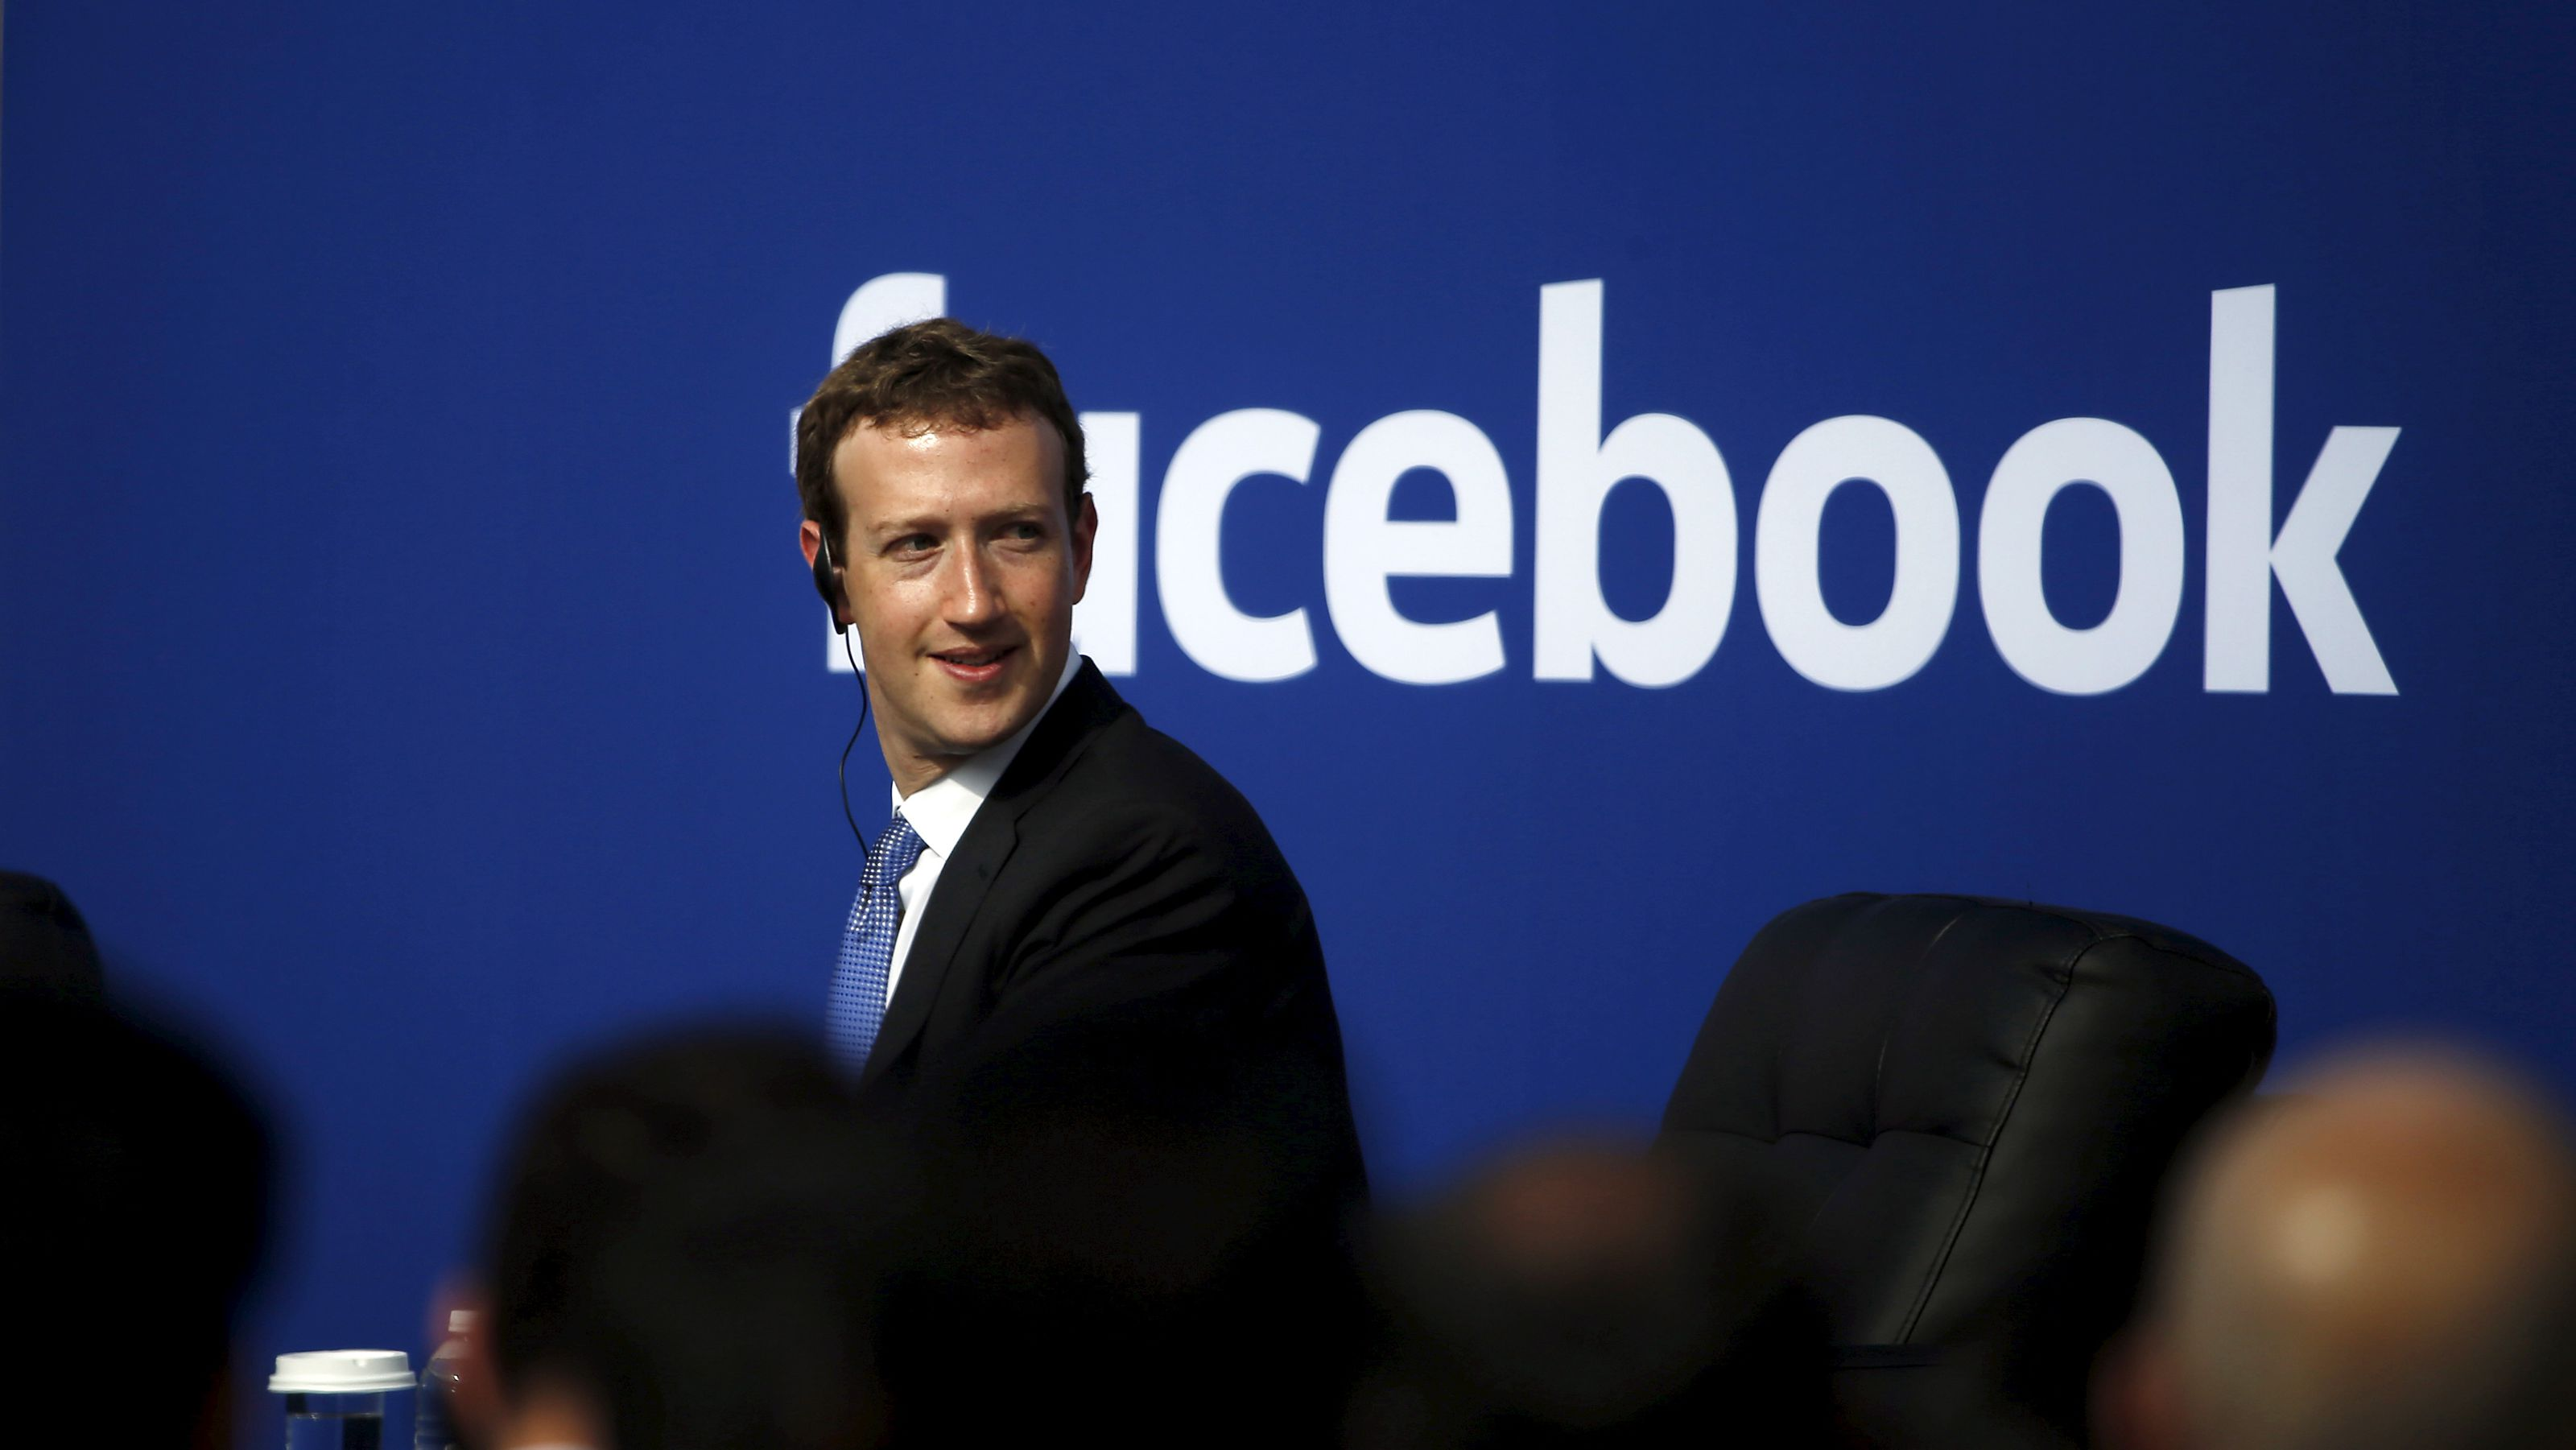 Facebook CEO Mark Zuckerberg is seen on stage during a town hall with Indian Prime Minister Narendra Modi at Facebook's headquarters in Menlo Park, California September 27, 2015.